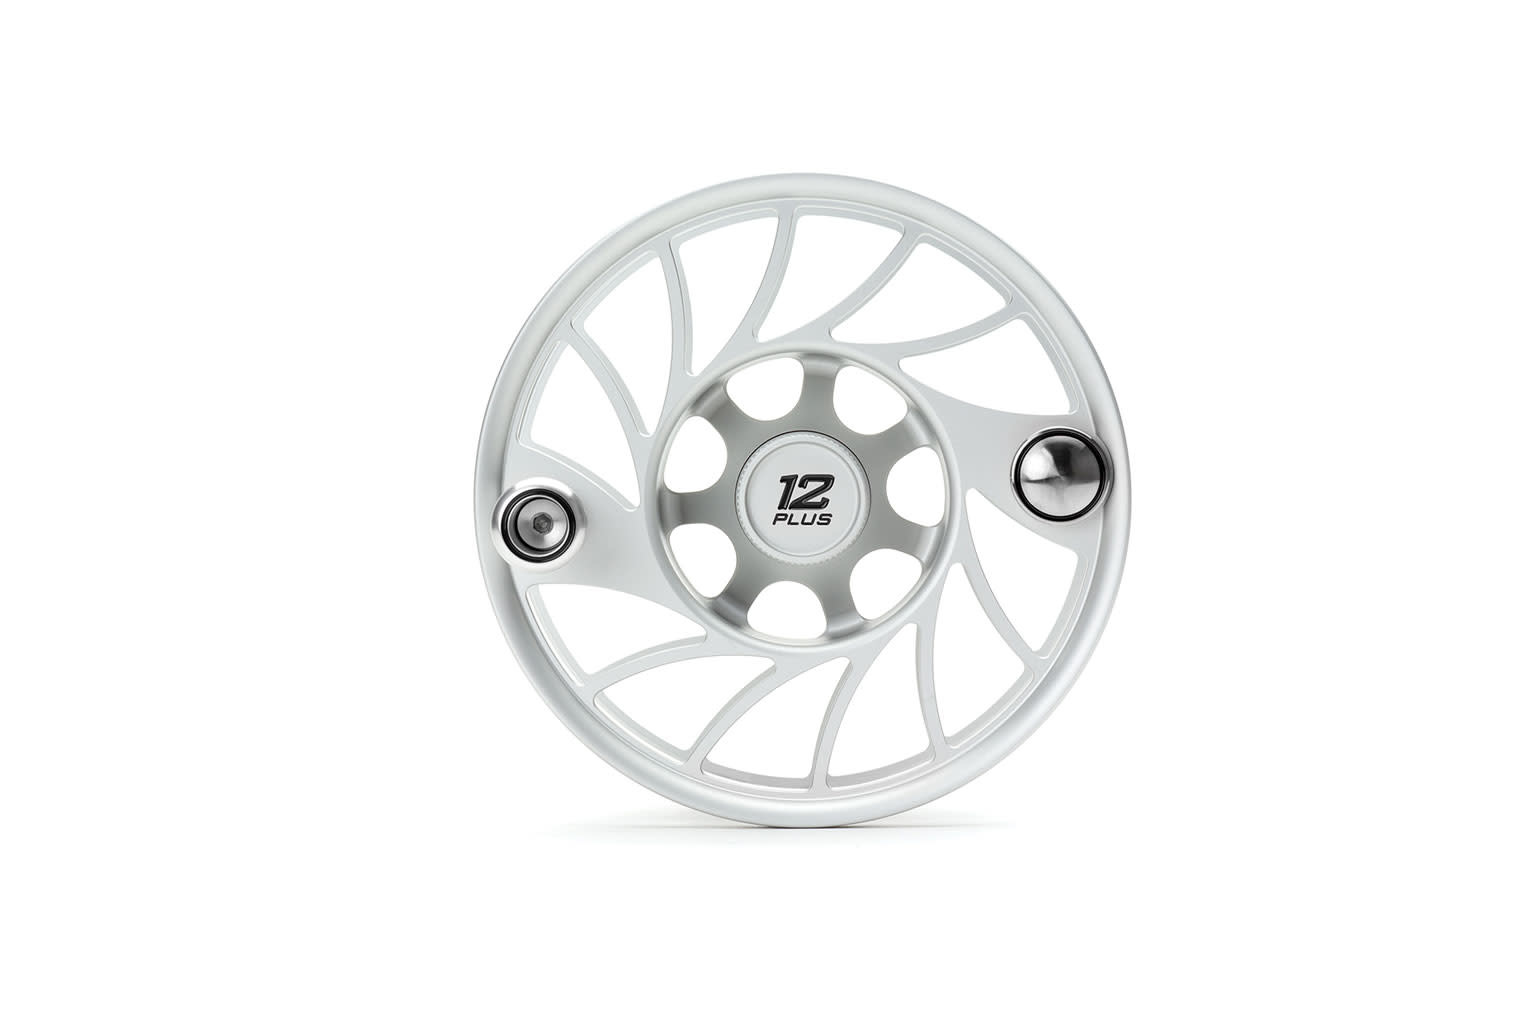 Hatch Hatch Gen 2 Finatic 12 Plus Extra Spool MA